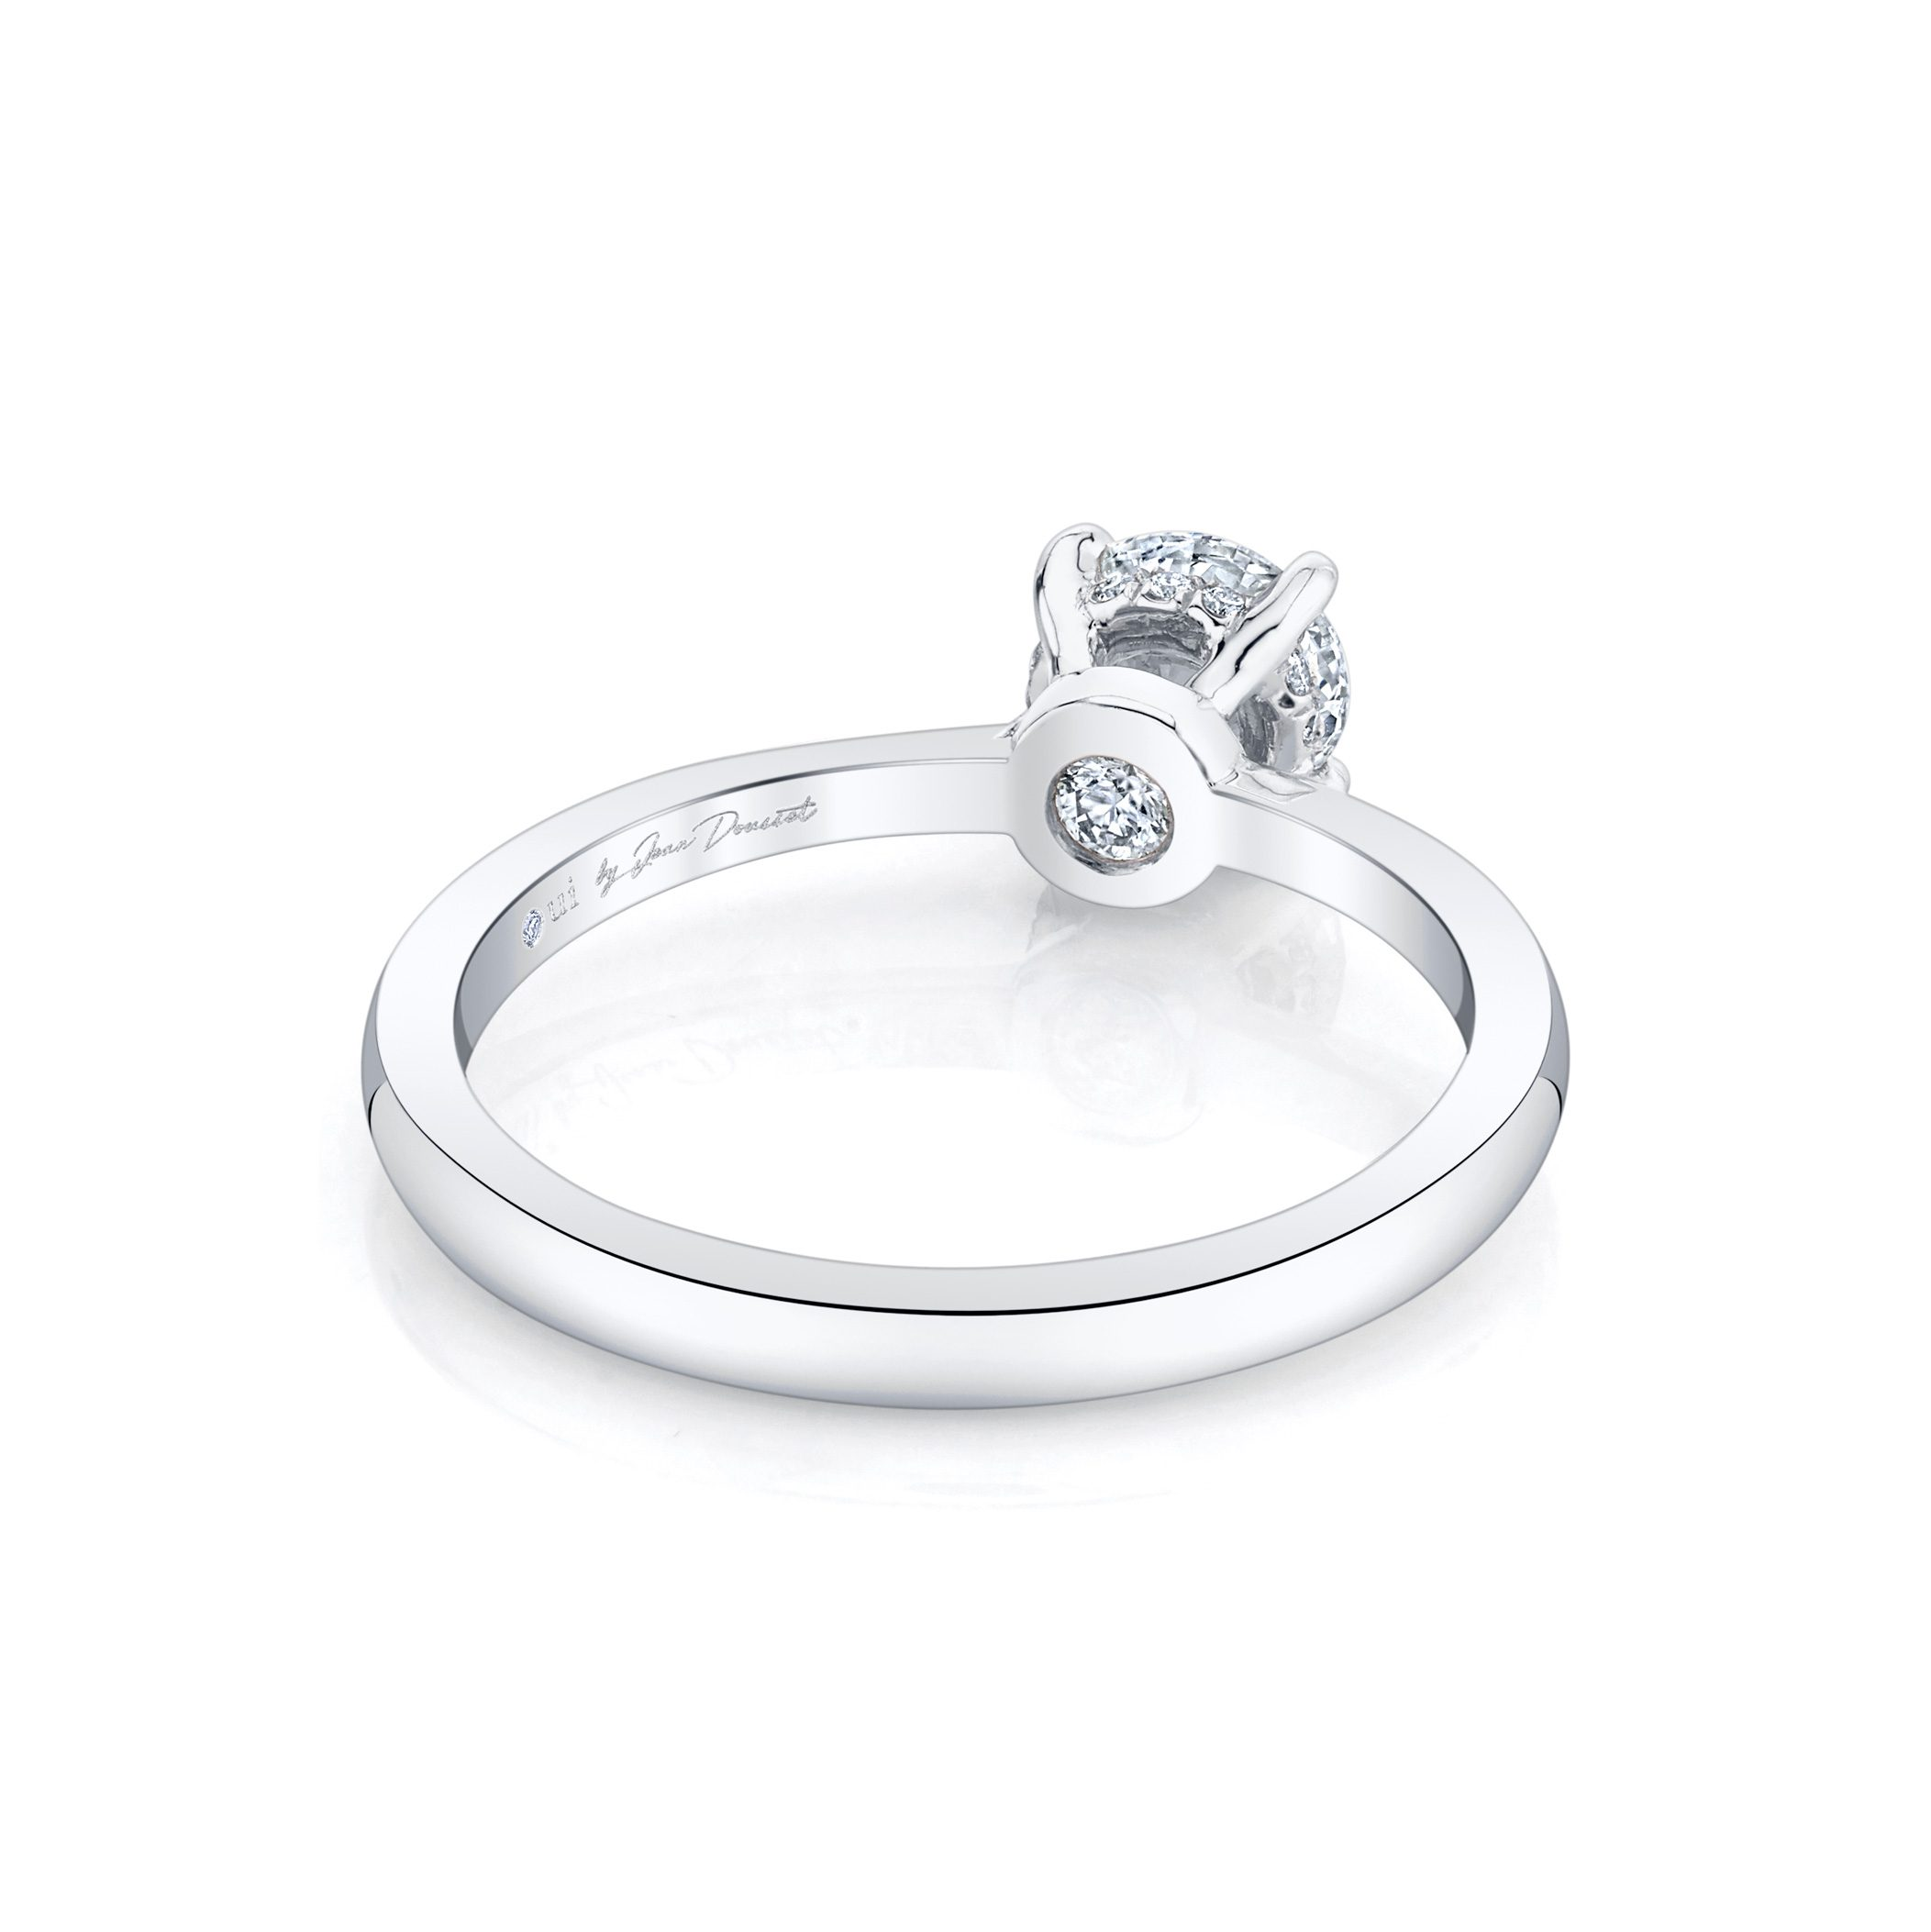 Colette Round Brilliant Solitaire Engagement Ring with a sold band in 18k White Gold Back View by Oui by Jean Dousset